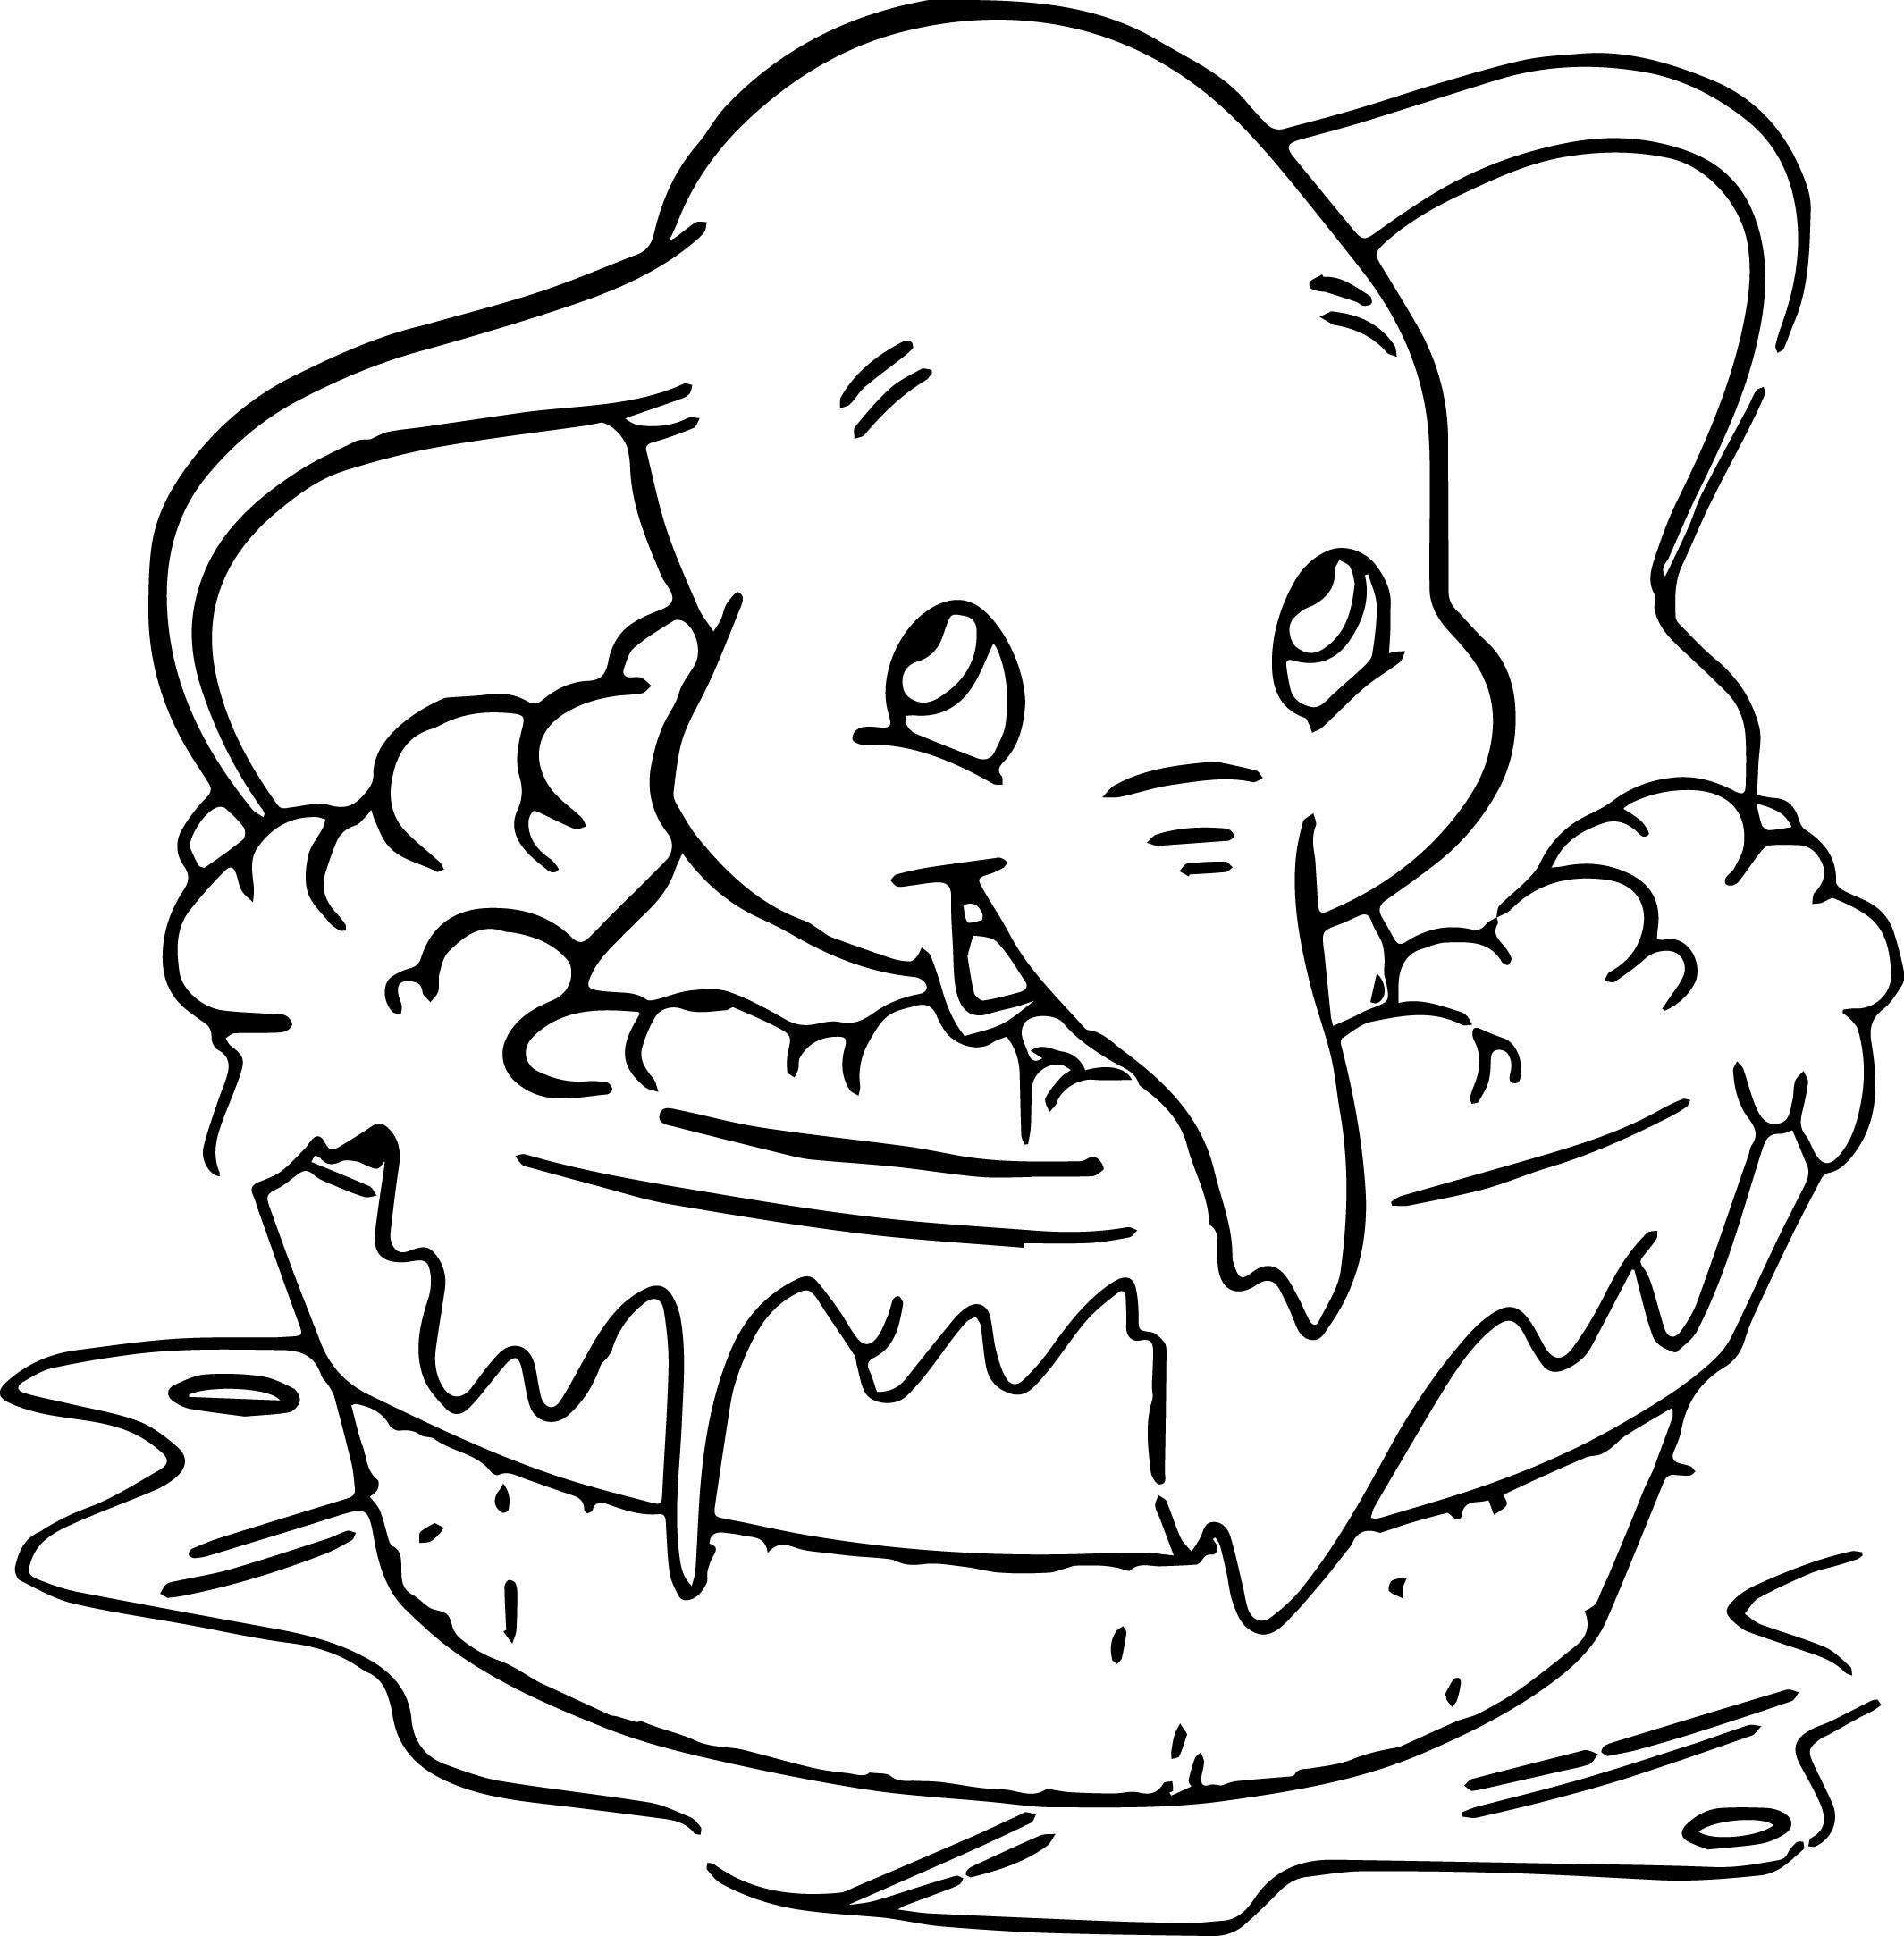 disney dumbo elephant coloring pages wecoloringpage